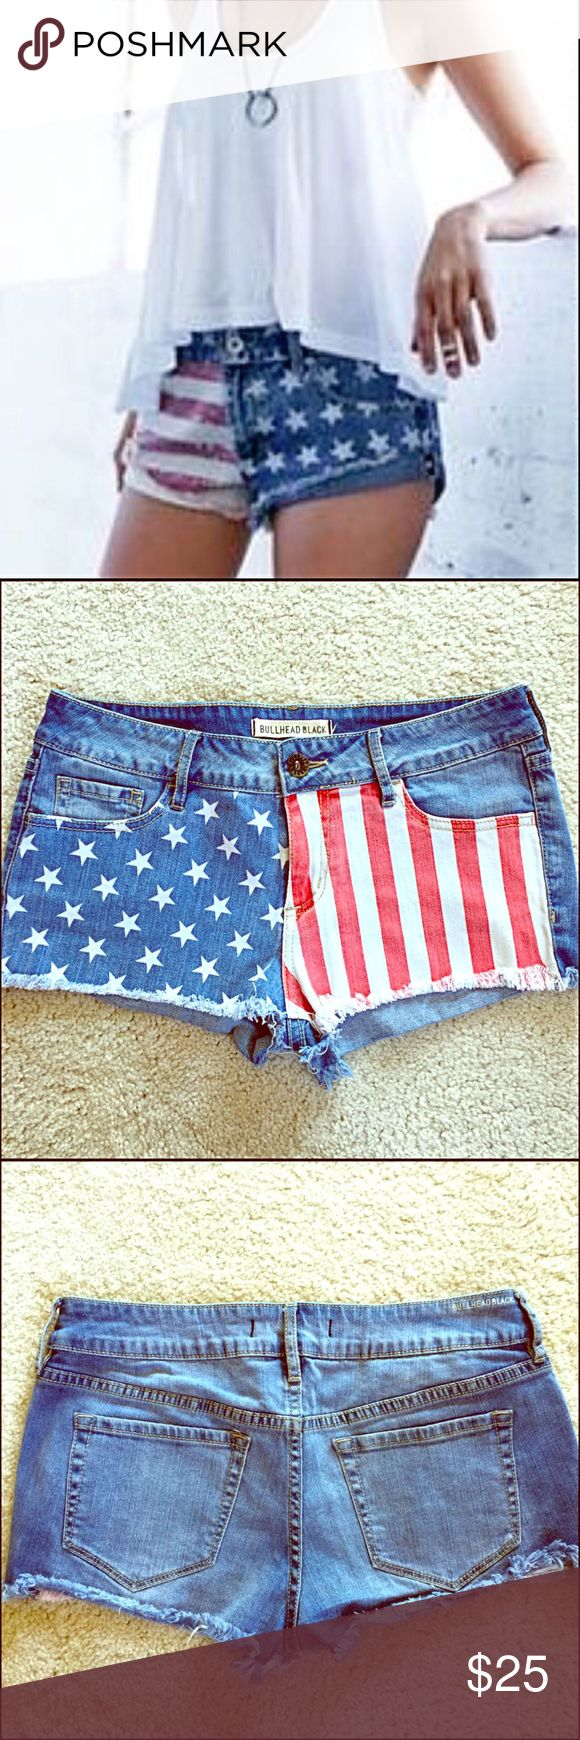 BULLHEAD BLACK AMERICAN FLAG 🇺🇸 DENIM SHORTS You'll Love These Patriotic Shorts by Bullhead Black! 🇺🇸 Perfect for 4th of July, Festivals, or Any Summer's Day! Models wearing a Similar Version. Steaming Hot Bootie Shorts! Really Cute & Sassy💁 Bullhead Black Shorts Jean Shorts